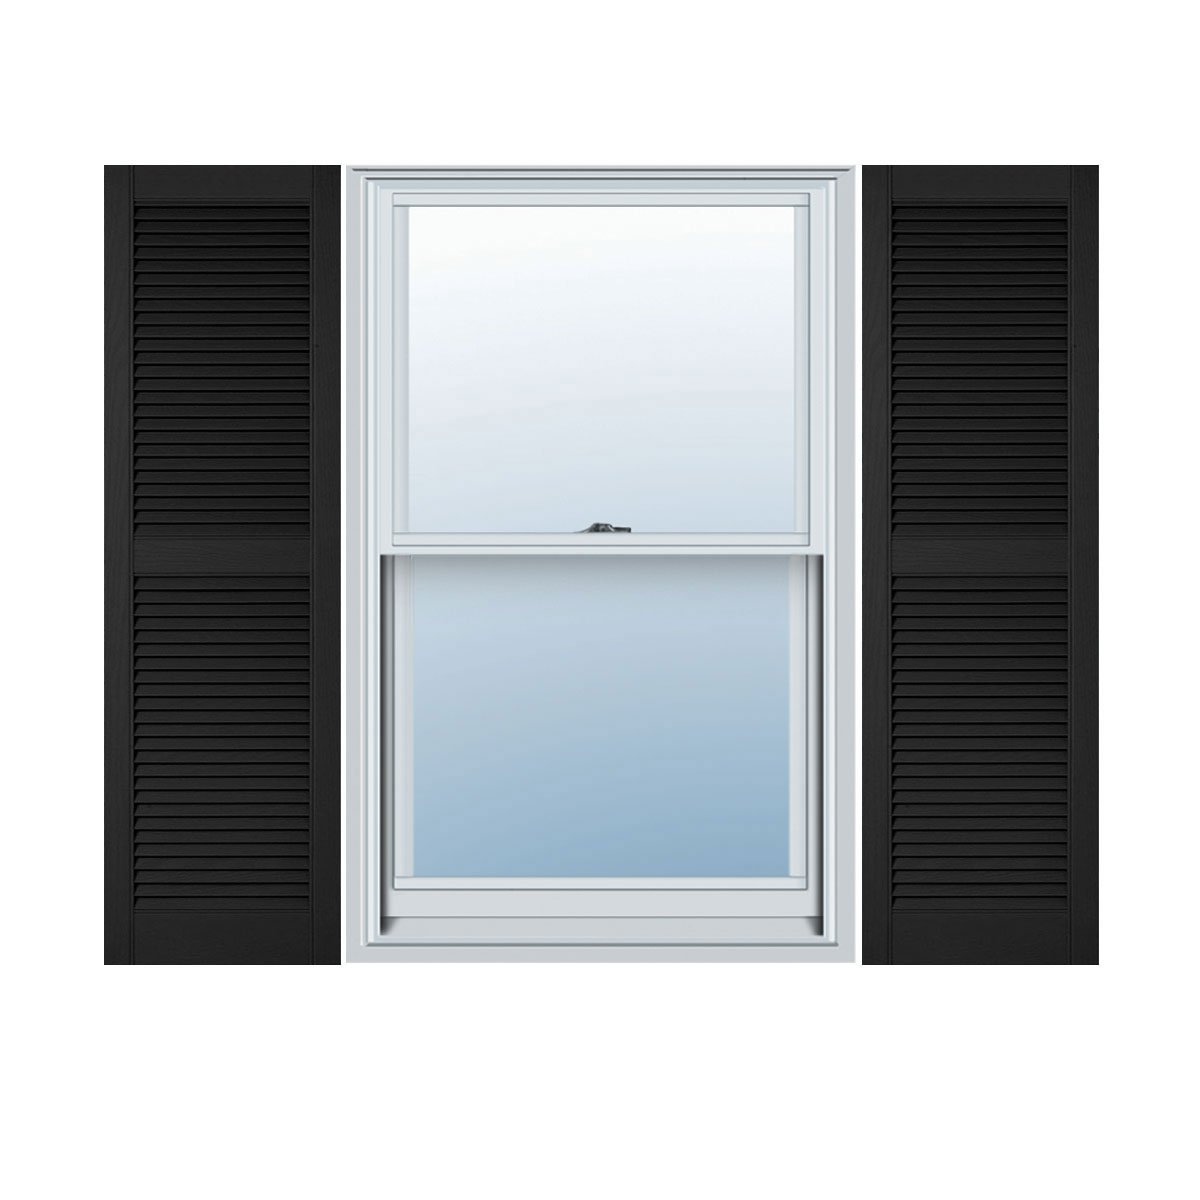 "Ekena Millwork LL2C14X07100BL Custom Straight Top Center Mullion, Open LouverShutter (Per Pair)14 1/2""W x 71""HBlack"